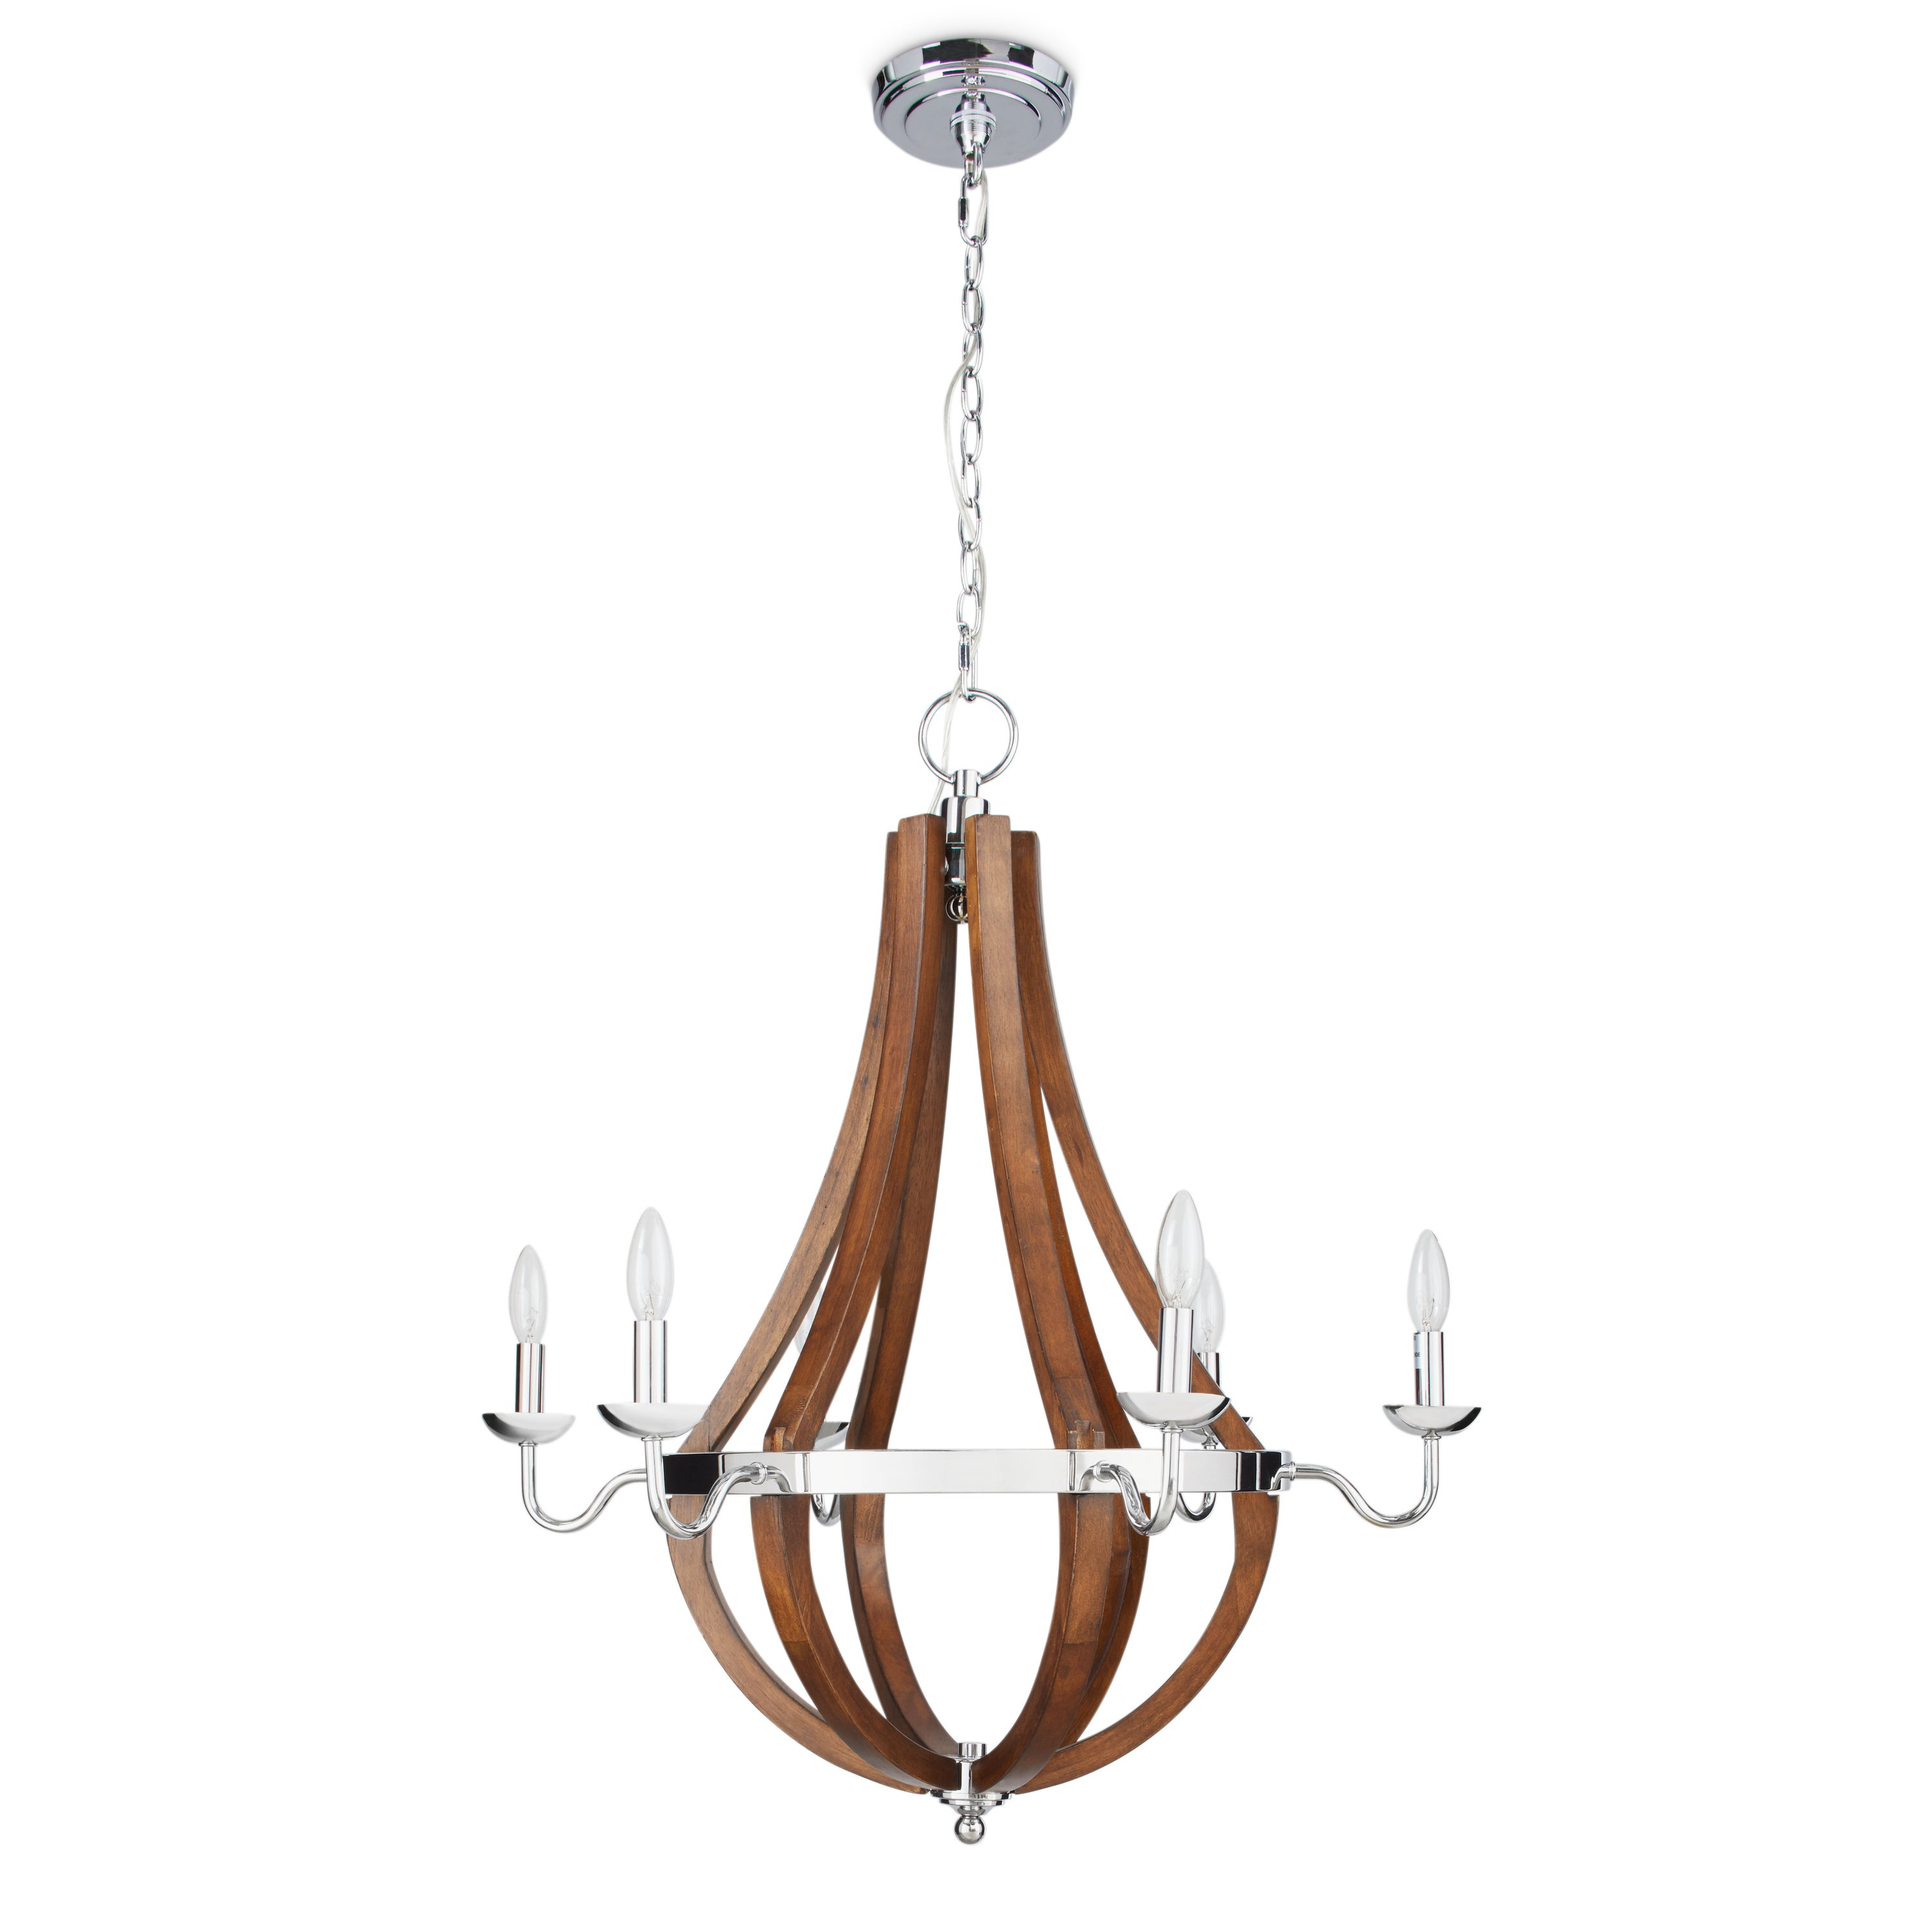 Vineyard wood and chrome 6 light chandelier free shipping today vineyard wood and chrome 6 light chandelier free shipping today overstock 15836746 arubaitofo Image collections